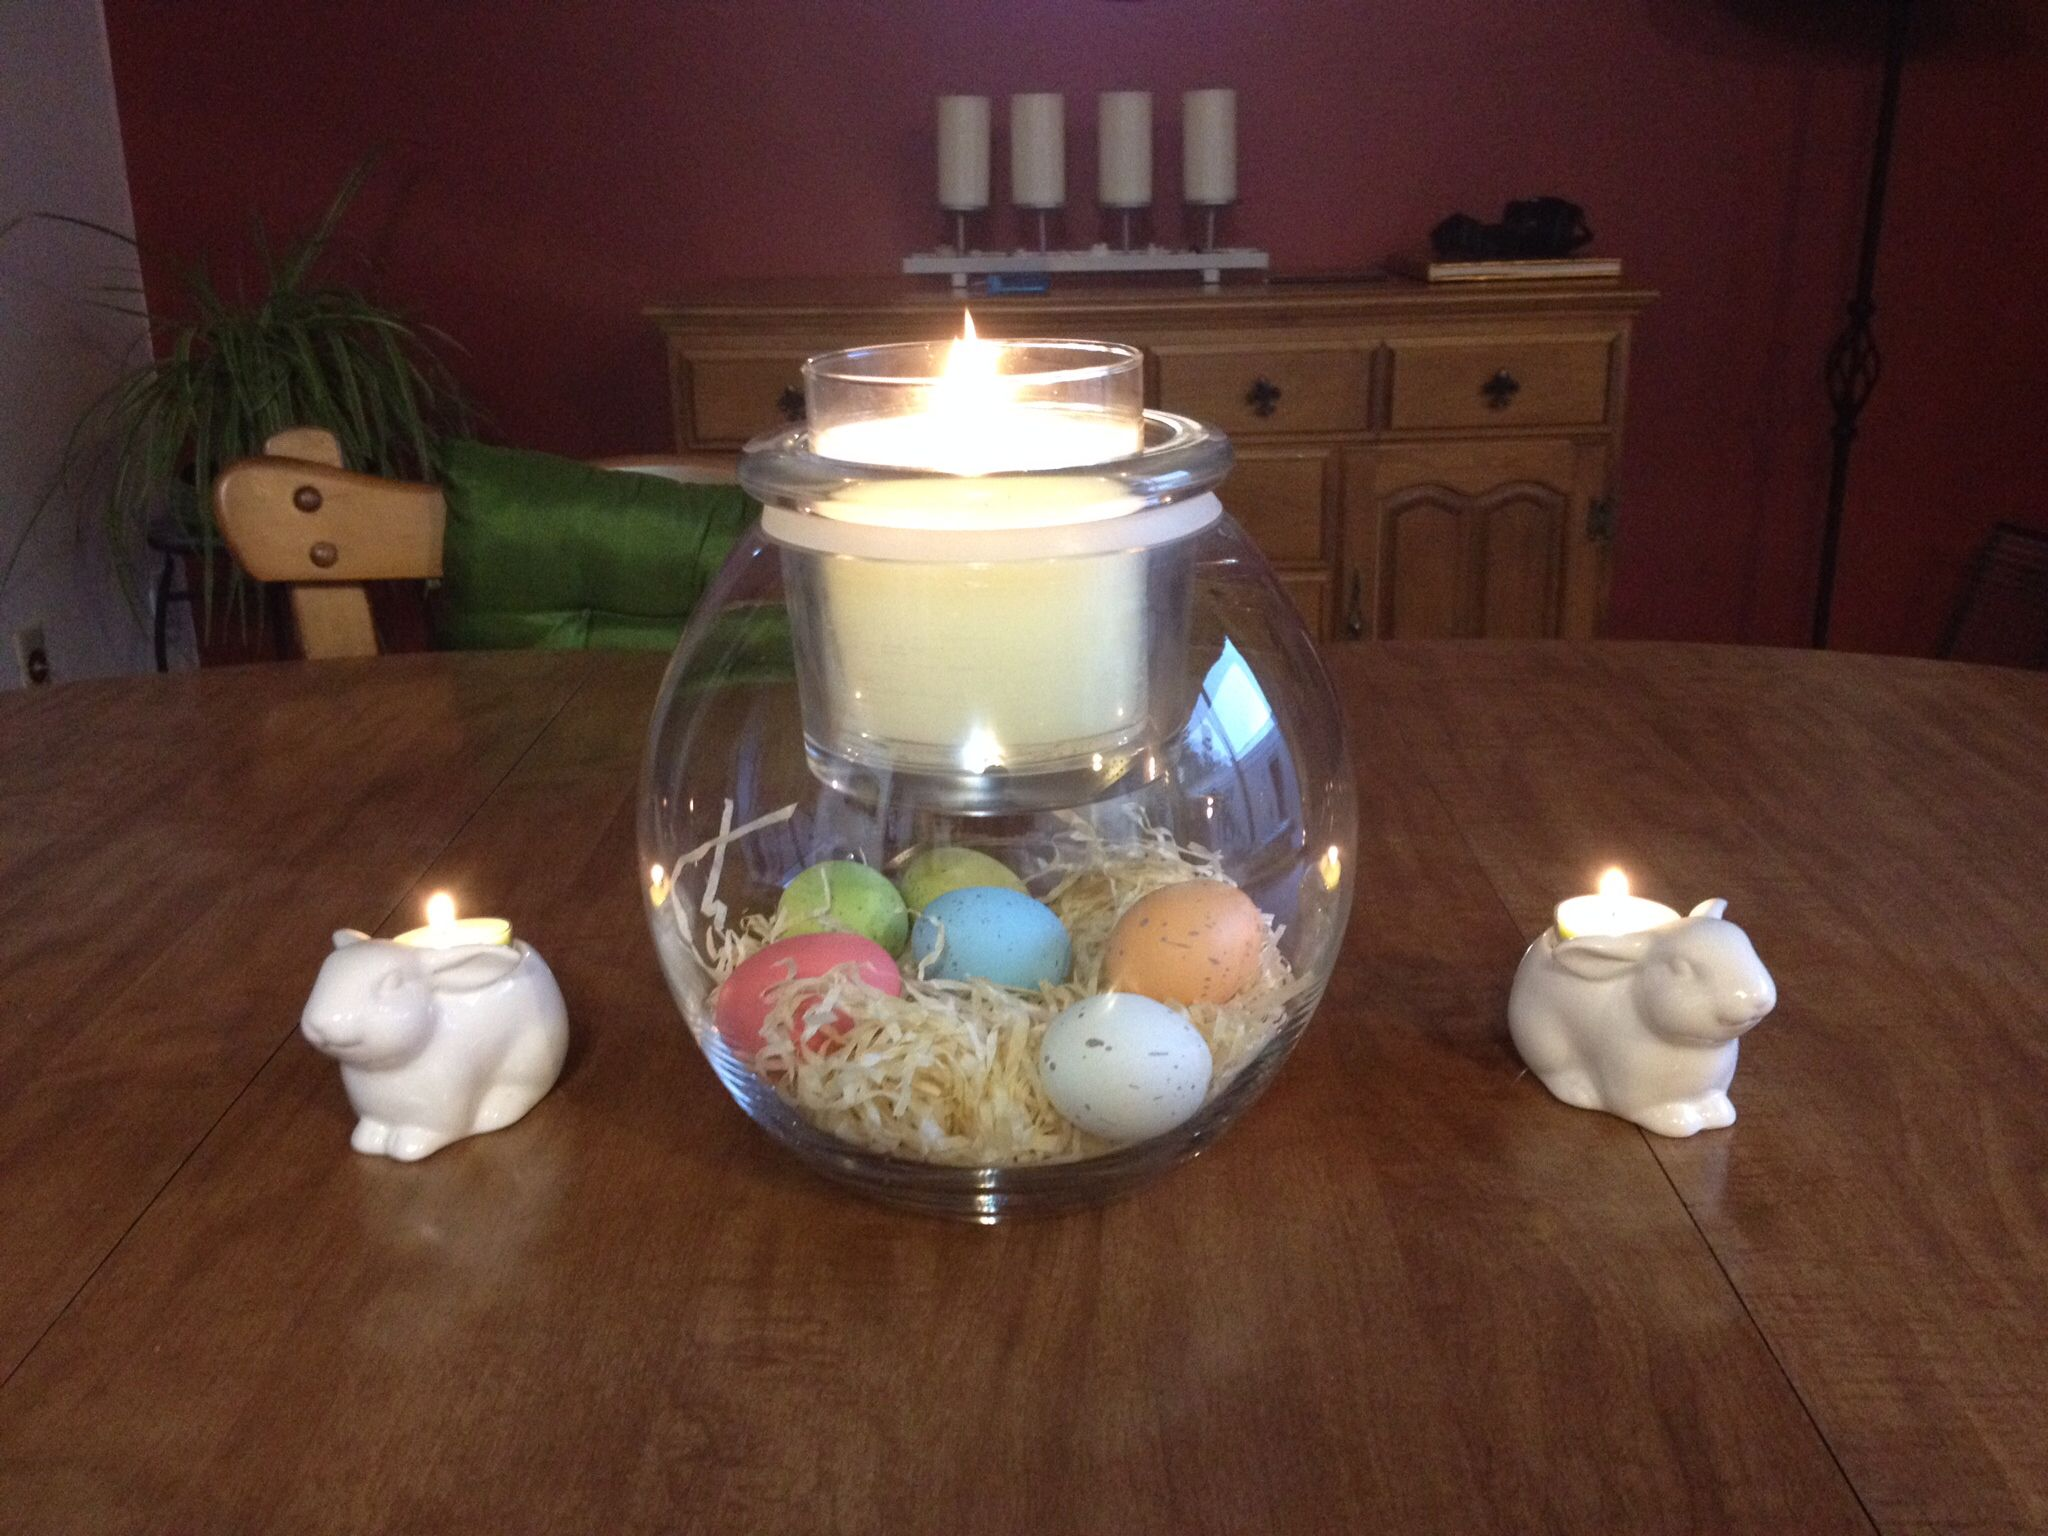 The Clearly Creative GloLite Jar Holder with a GloLite Jar Candle decorated for Easter by my BFF! Love it! Get yours today at www.partylite.biz/rappinjapfun